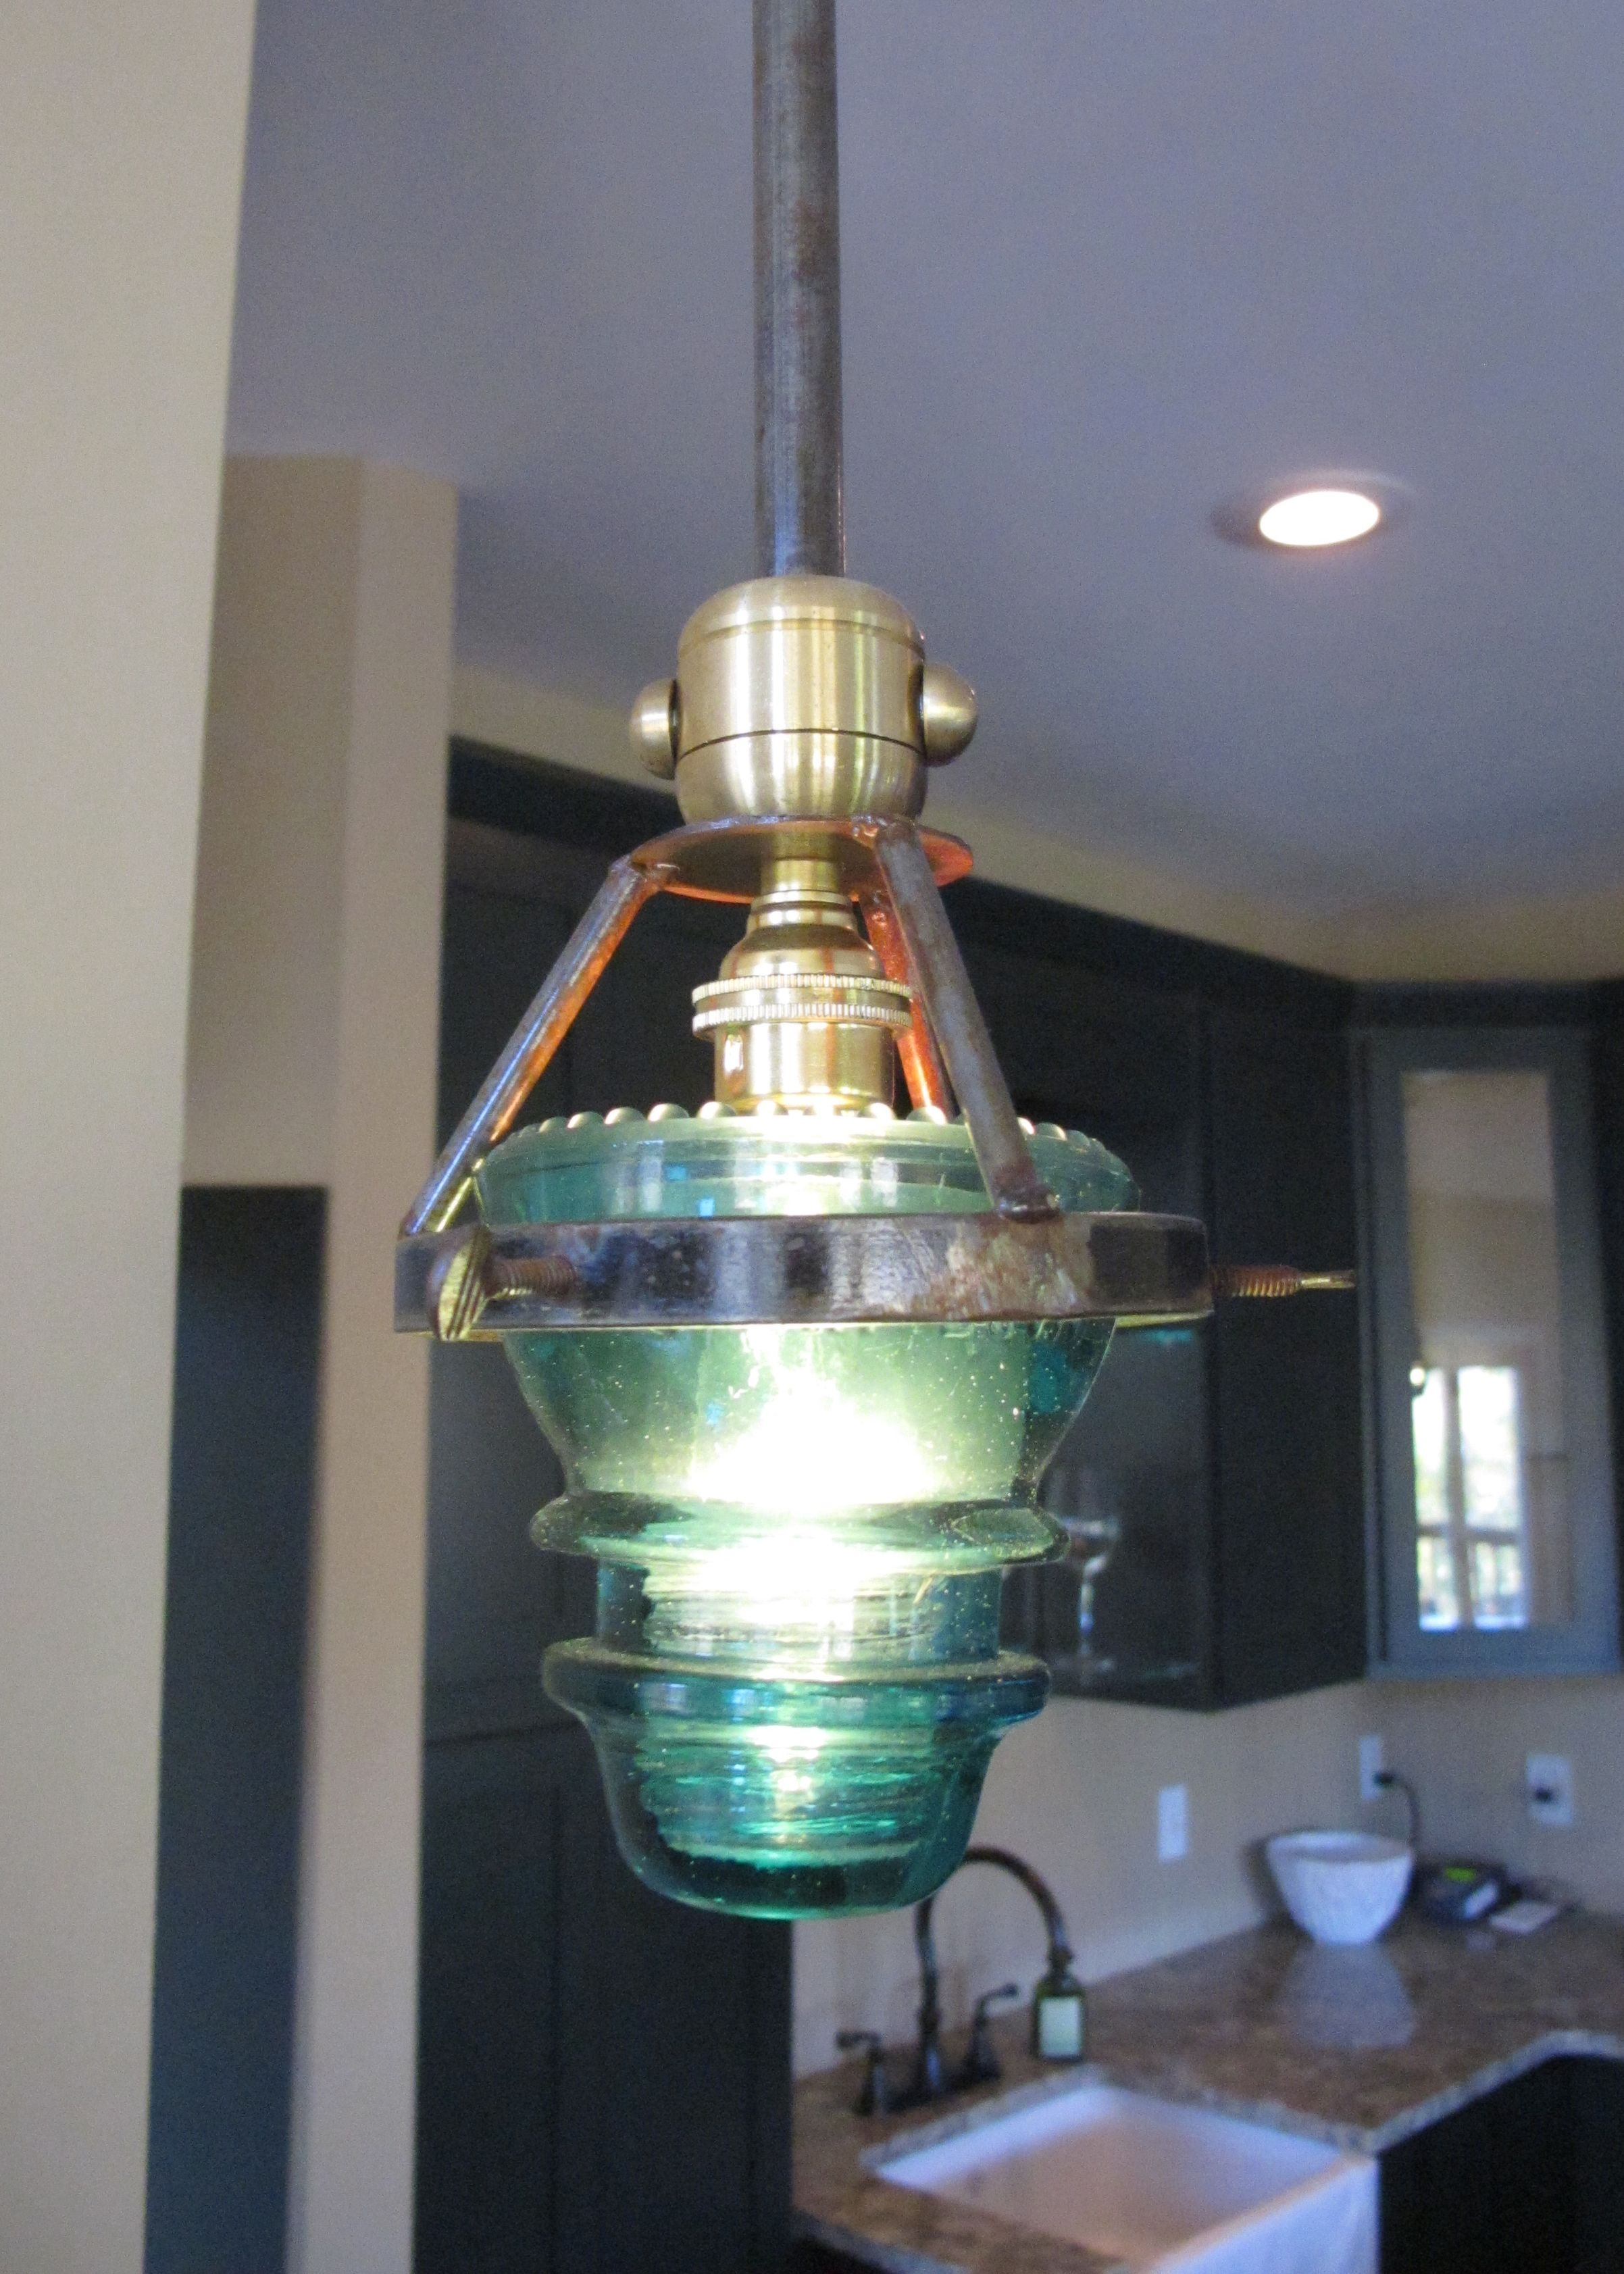 Telephone insulator light fixture for the home pinterest telephone insulator light fixture arubaitofo Choice Image